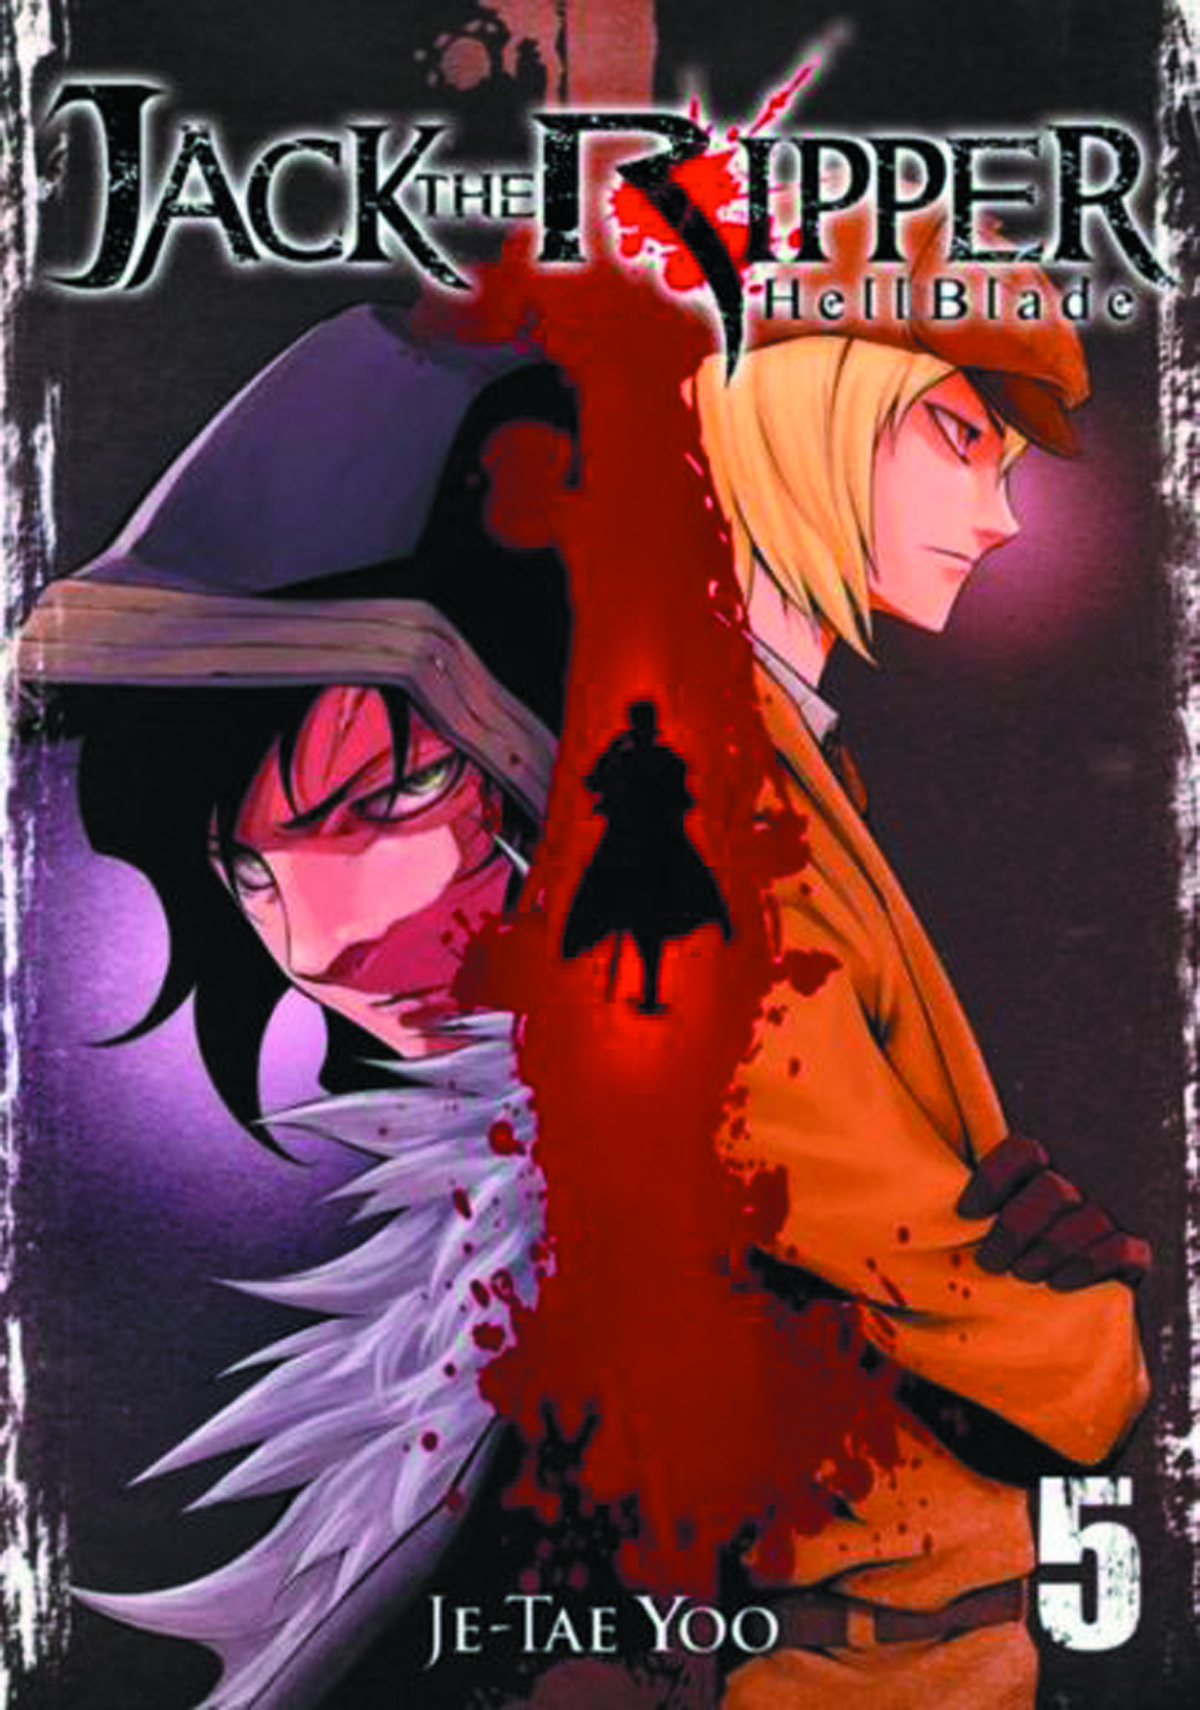 JACK THE RIPPER HELL BLADE GN VOL 05